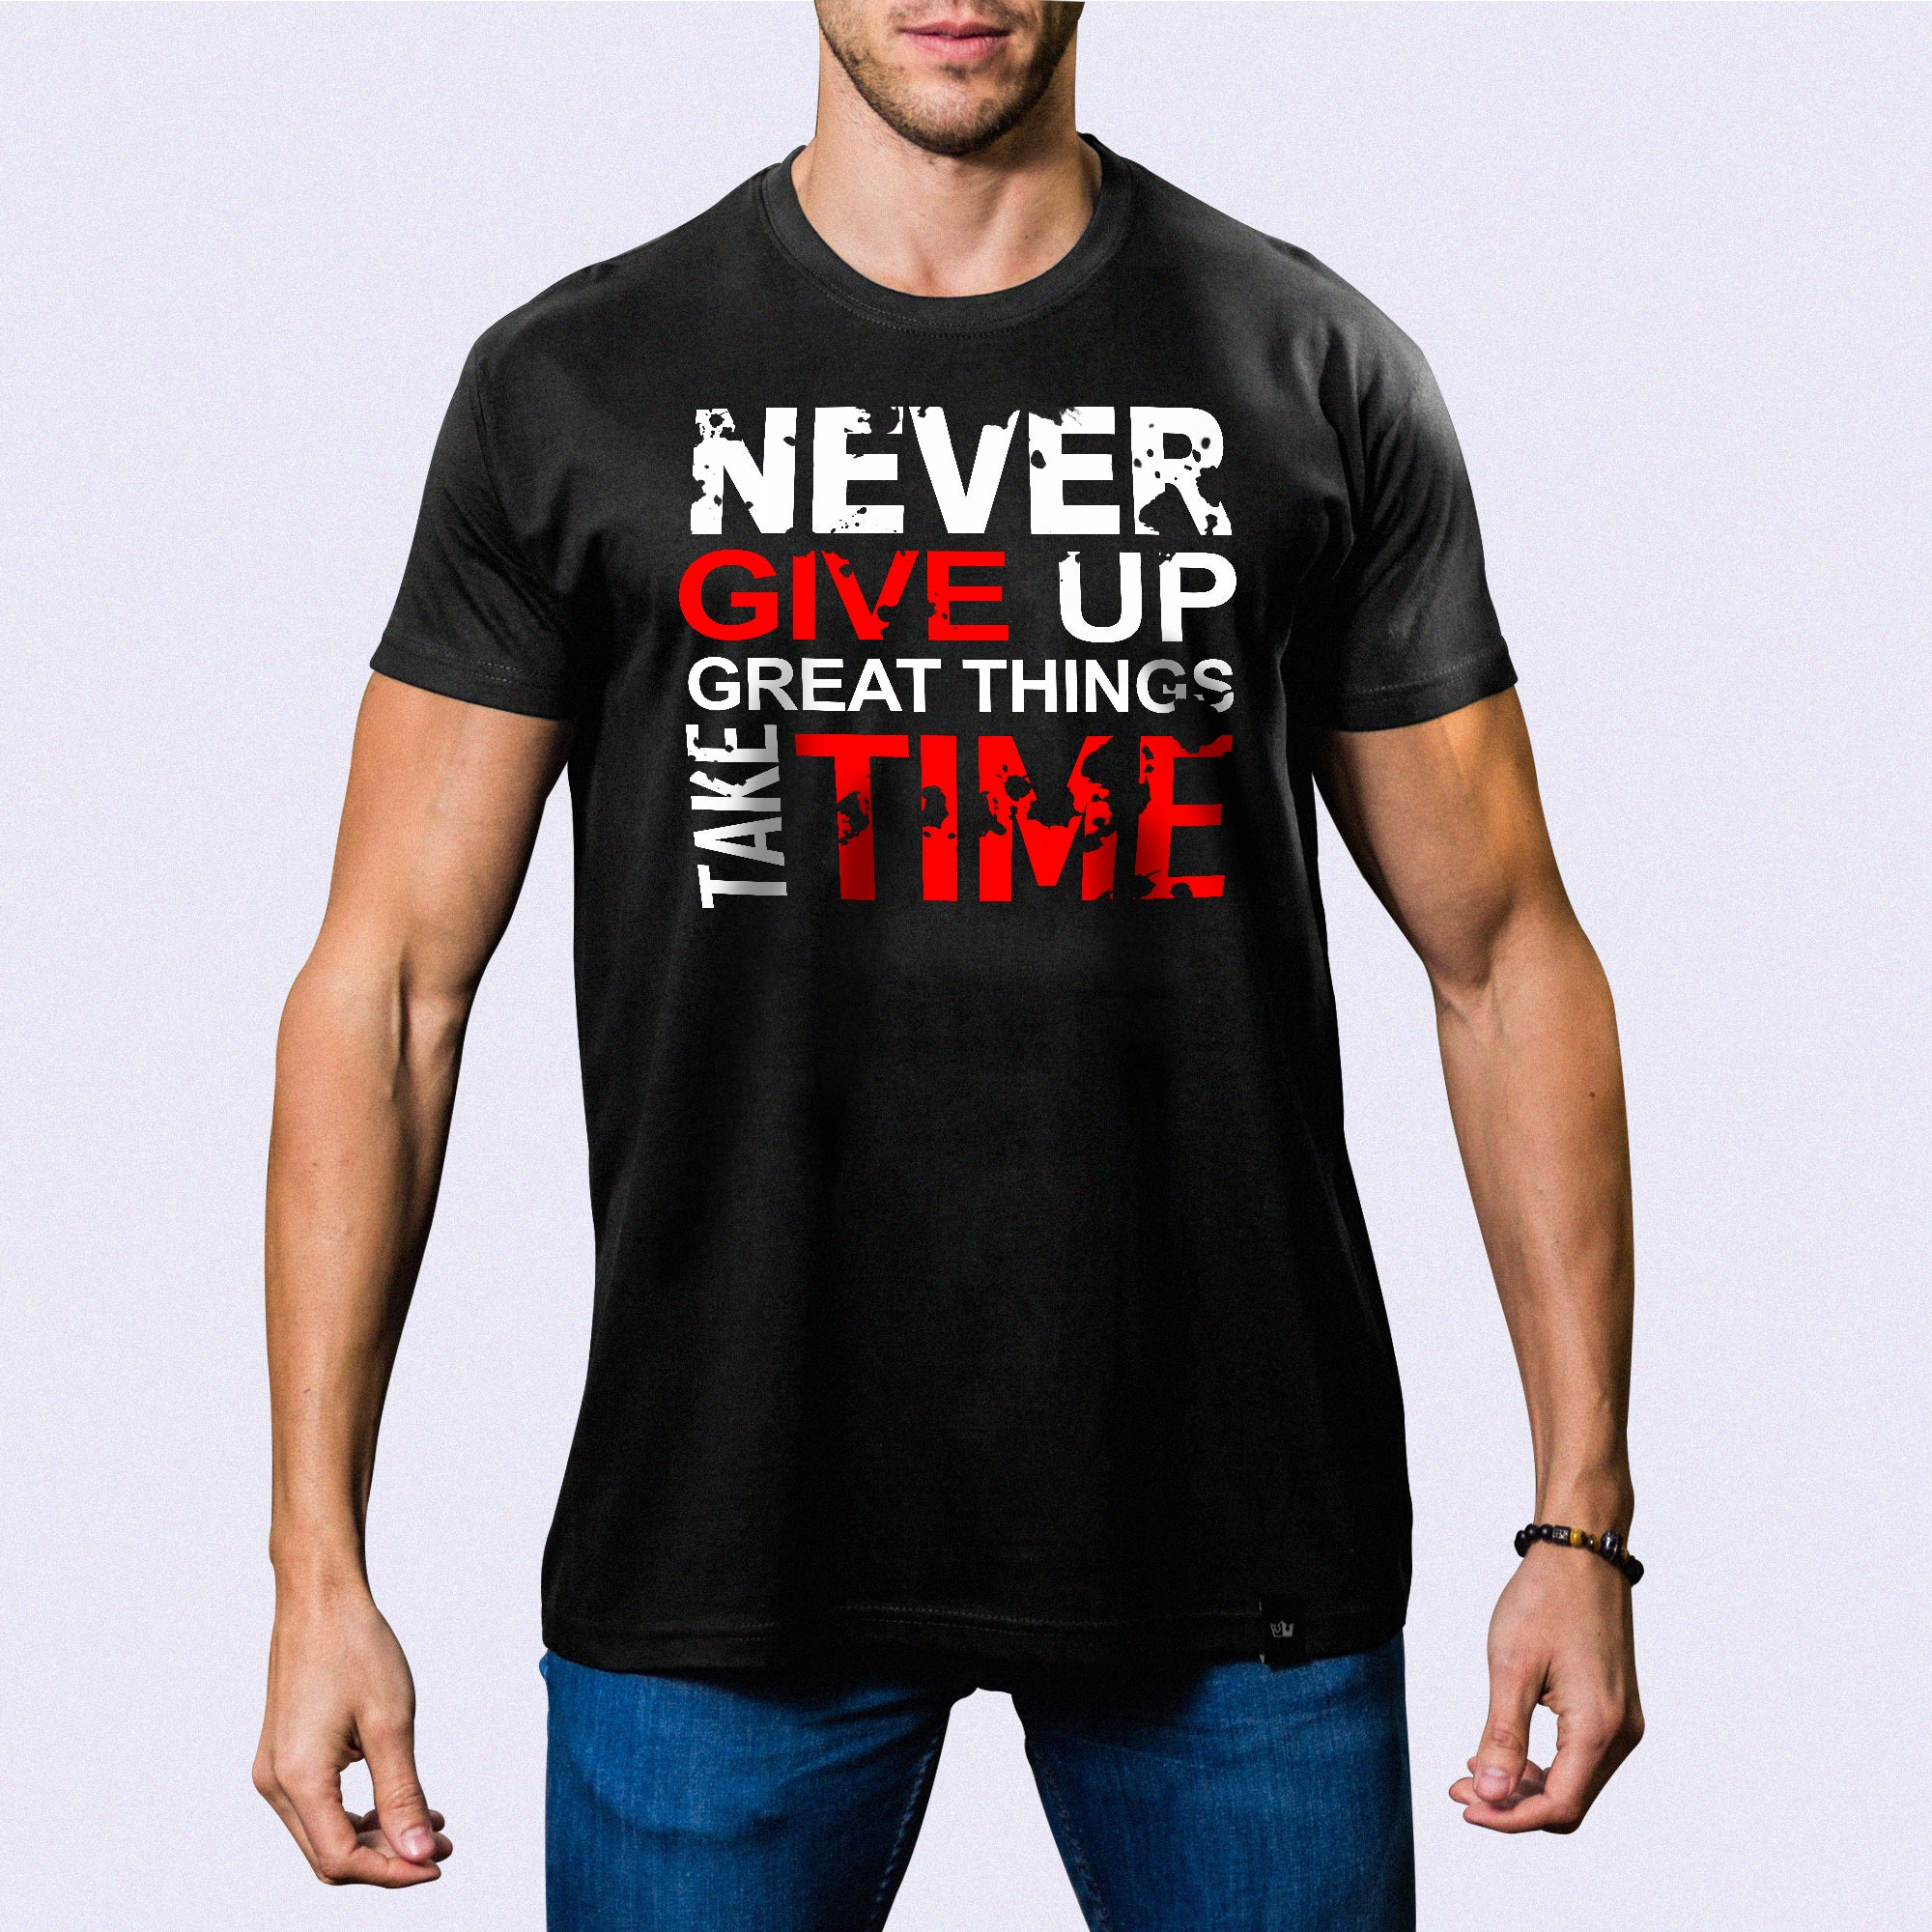 Never Give Up™ Shirt